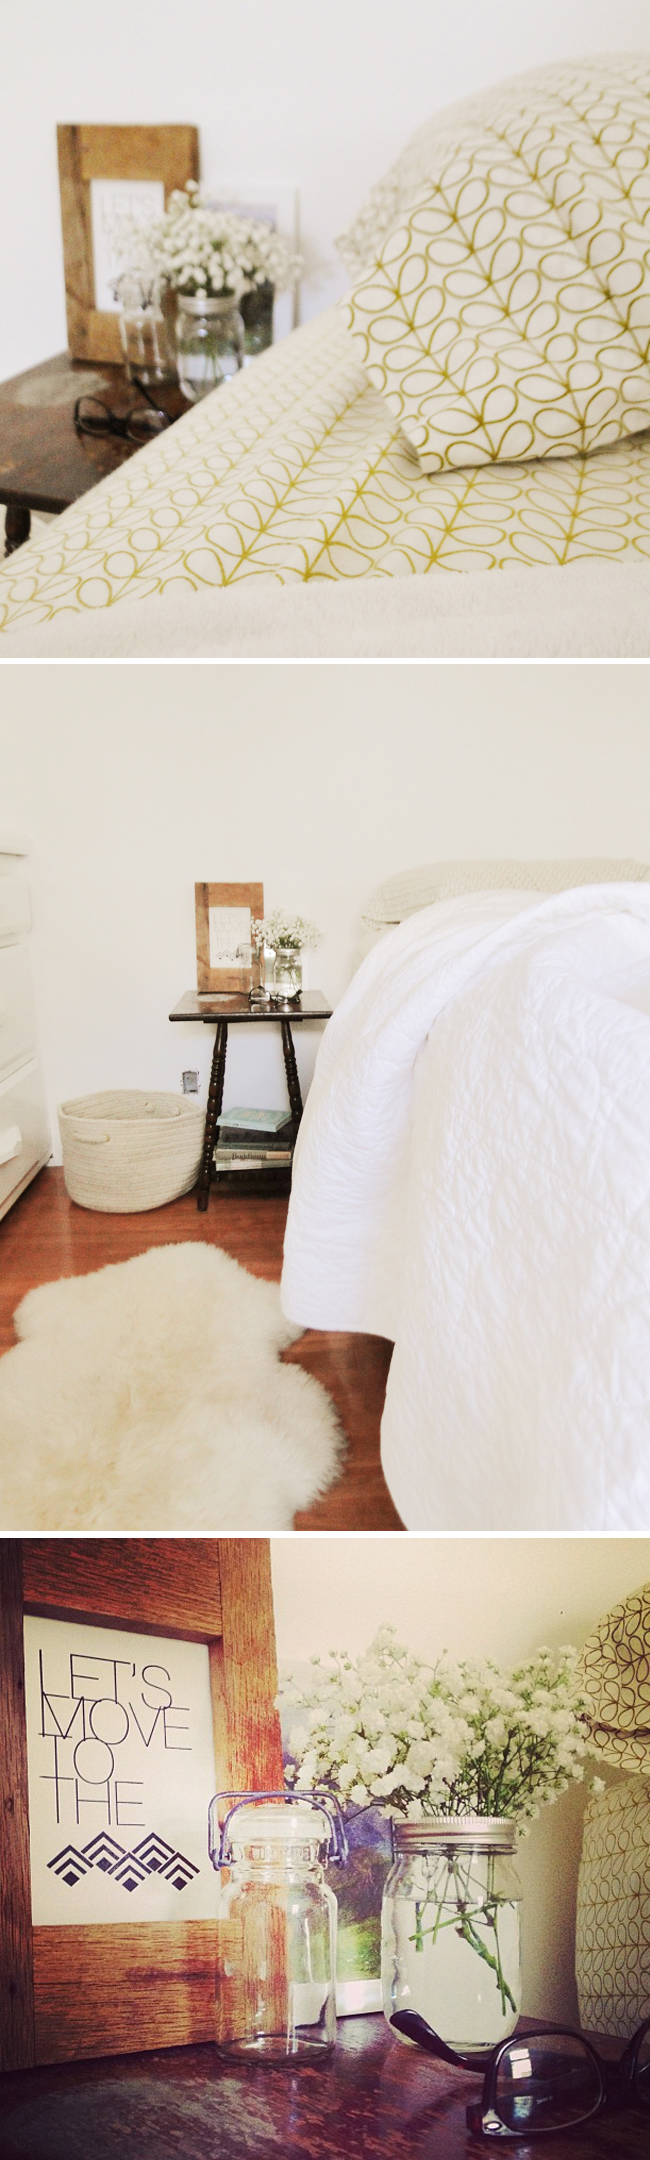 a-lovely-lark-master-bedroom-update